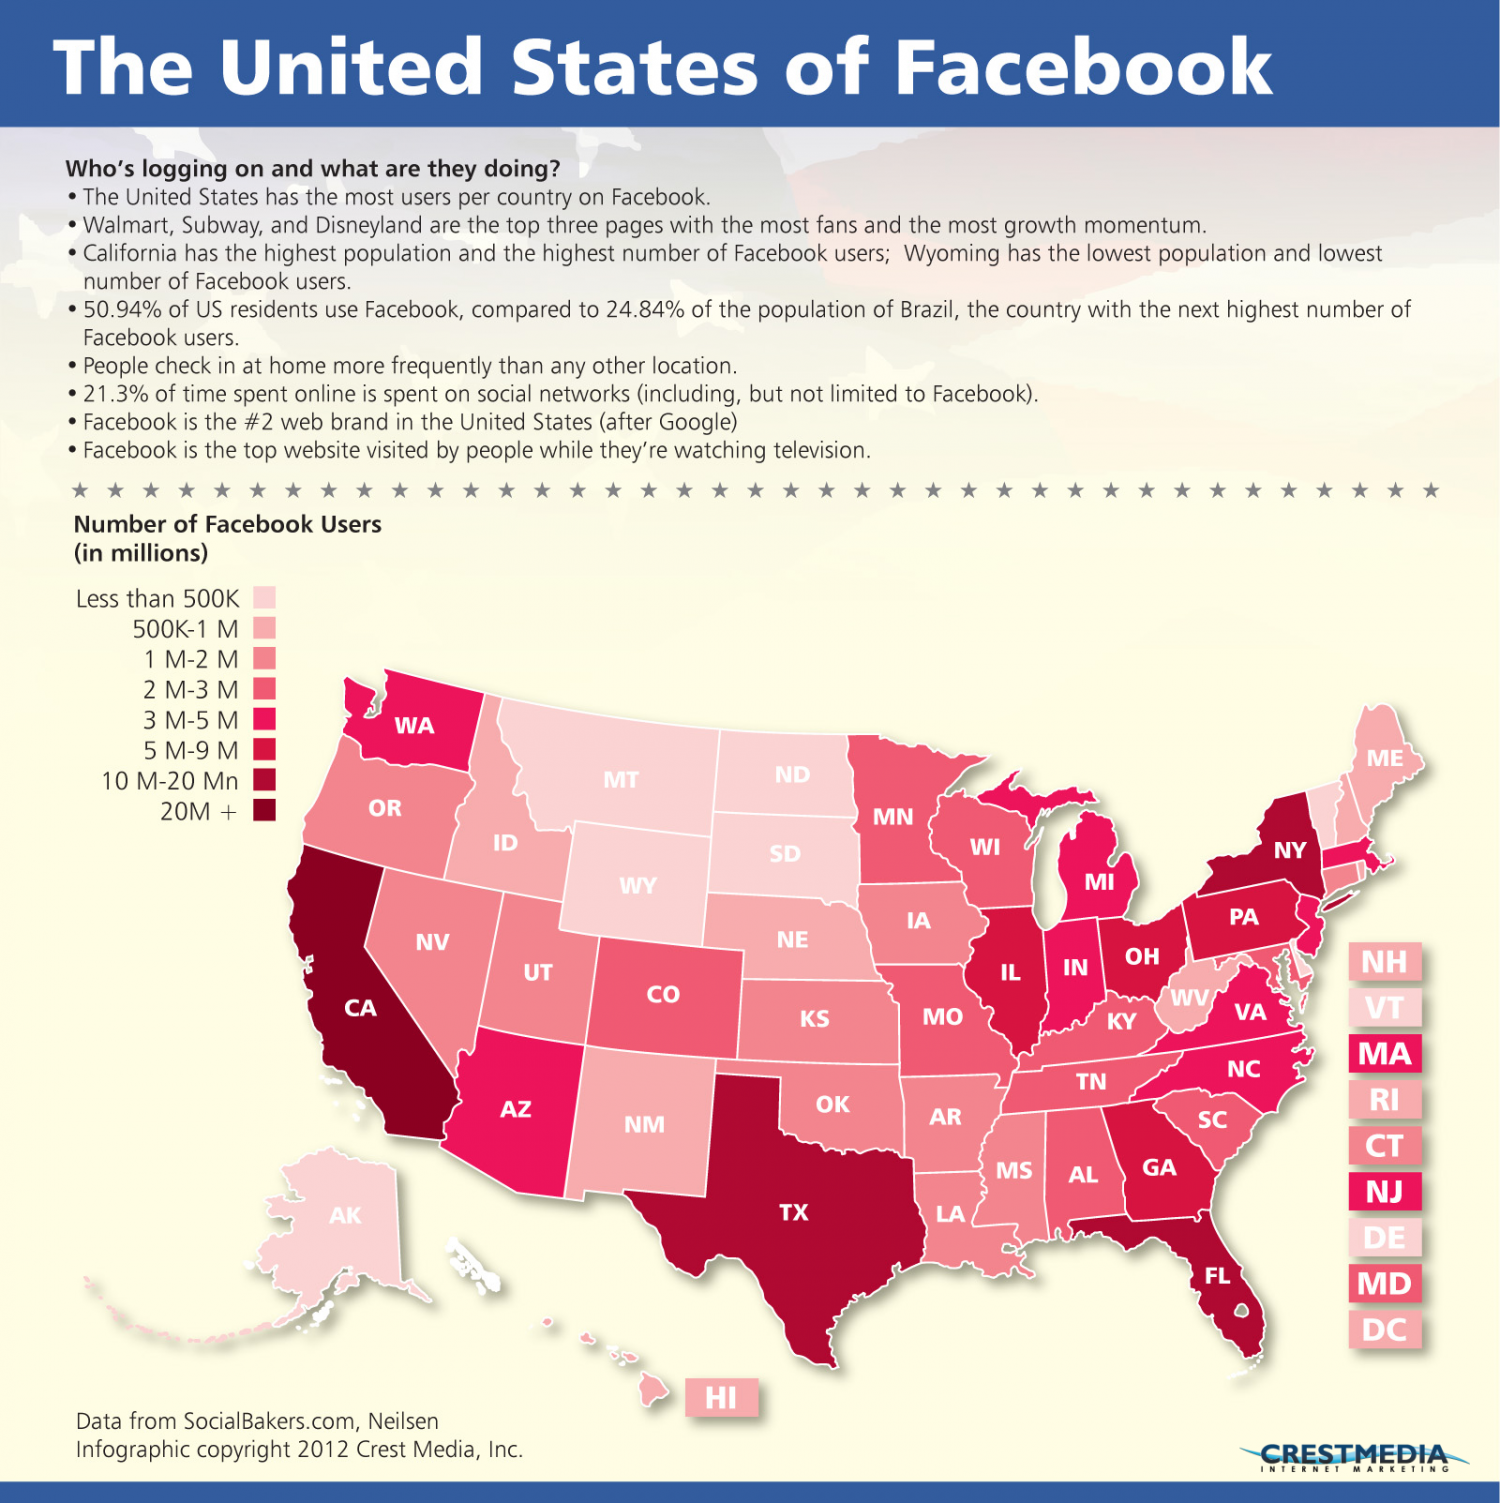 The United States of Facebook Infographic